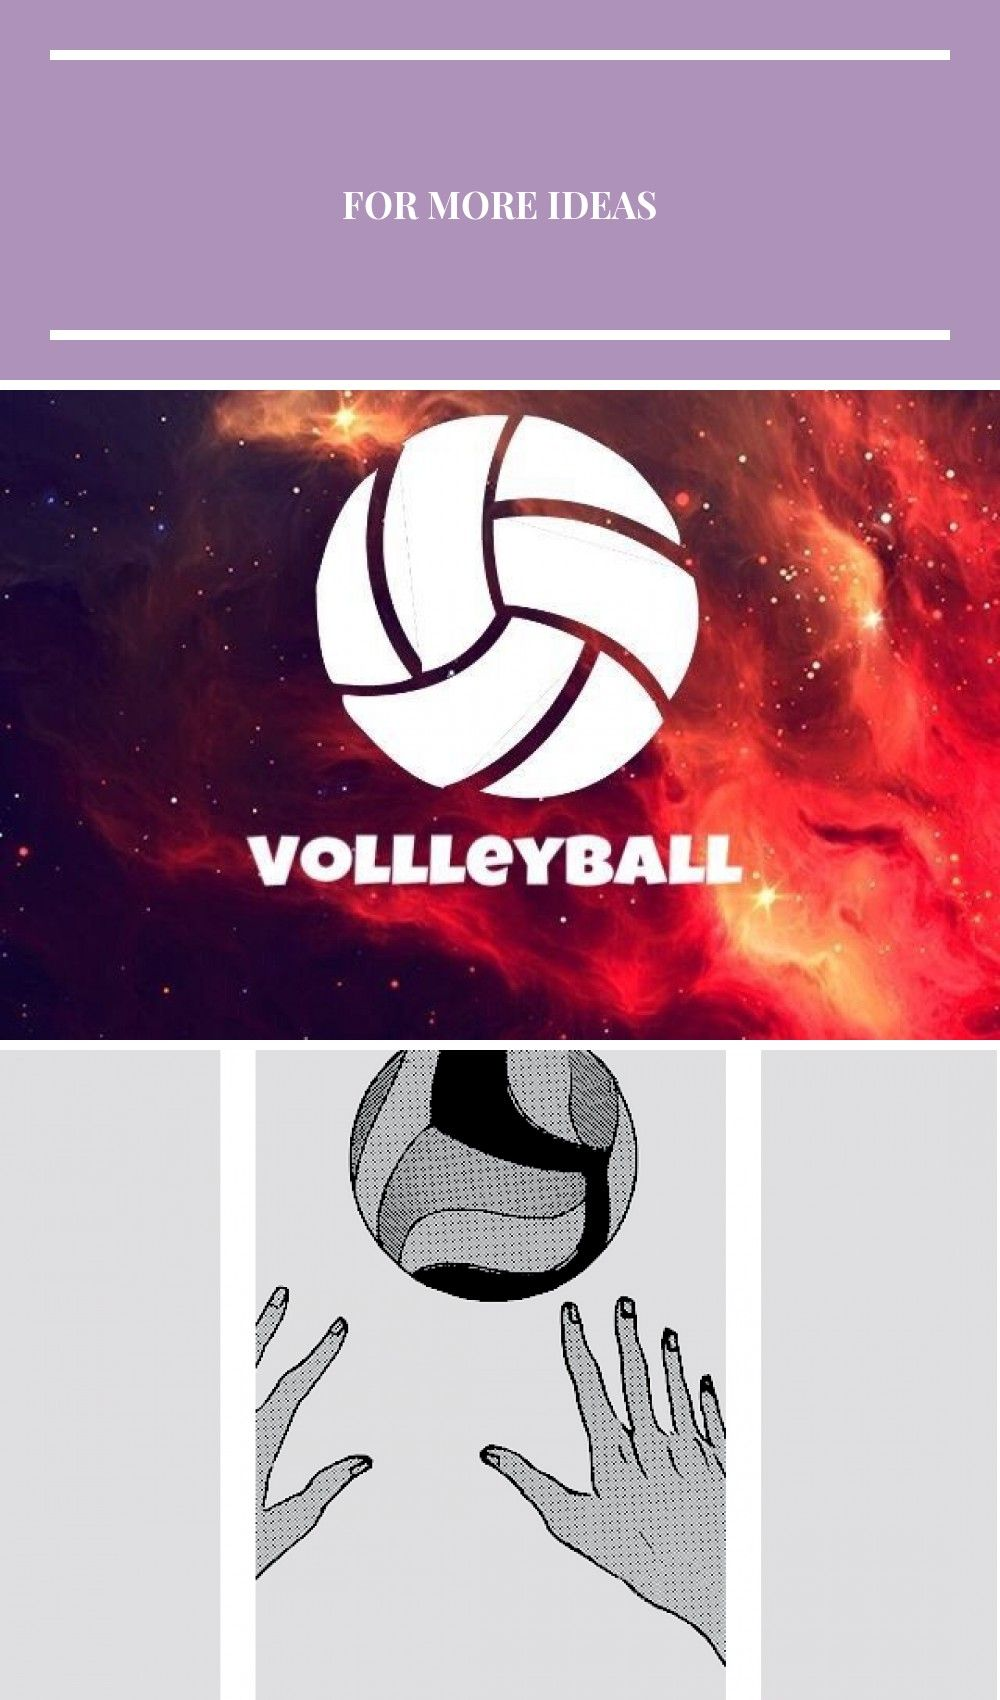 Volleyball Background Wallpaper 6 Volleyball Volleyball Backgrounds Diy Garden Wallpaper